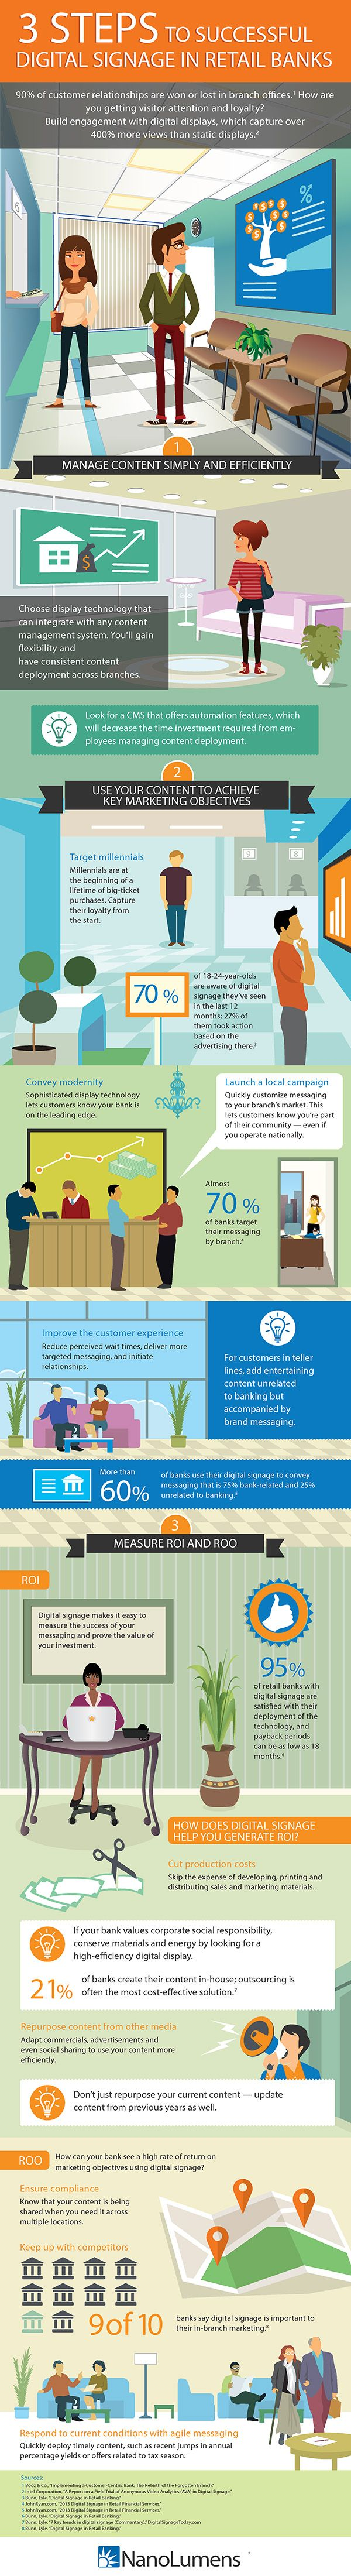 3 Steps to efficient and effective digital signage in retail banks #infographic #NanoLumens #LED Let us know you're a top Pinterest user in digital signage; when you share this image, include #nanopin.